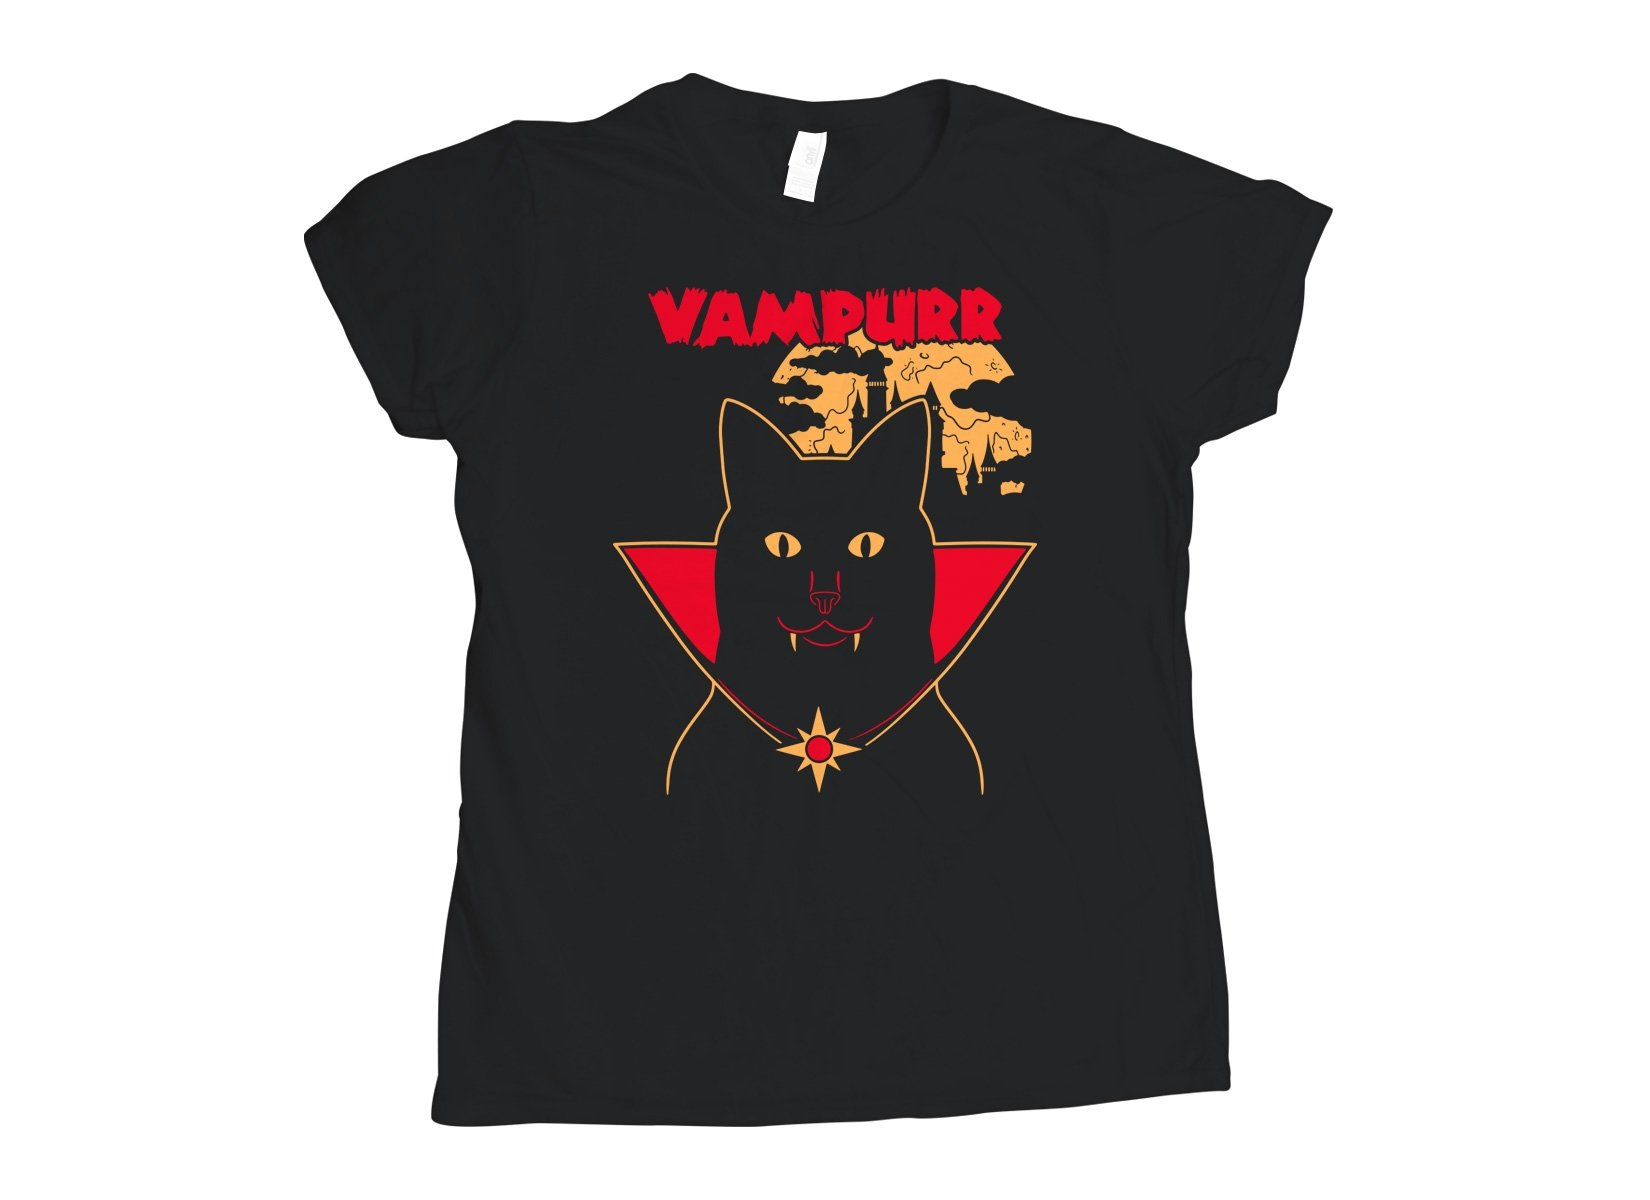 Vampurr on Womens T-Shirt